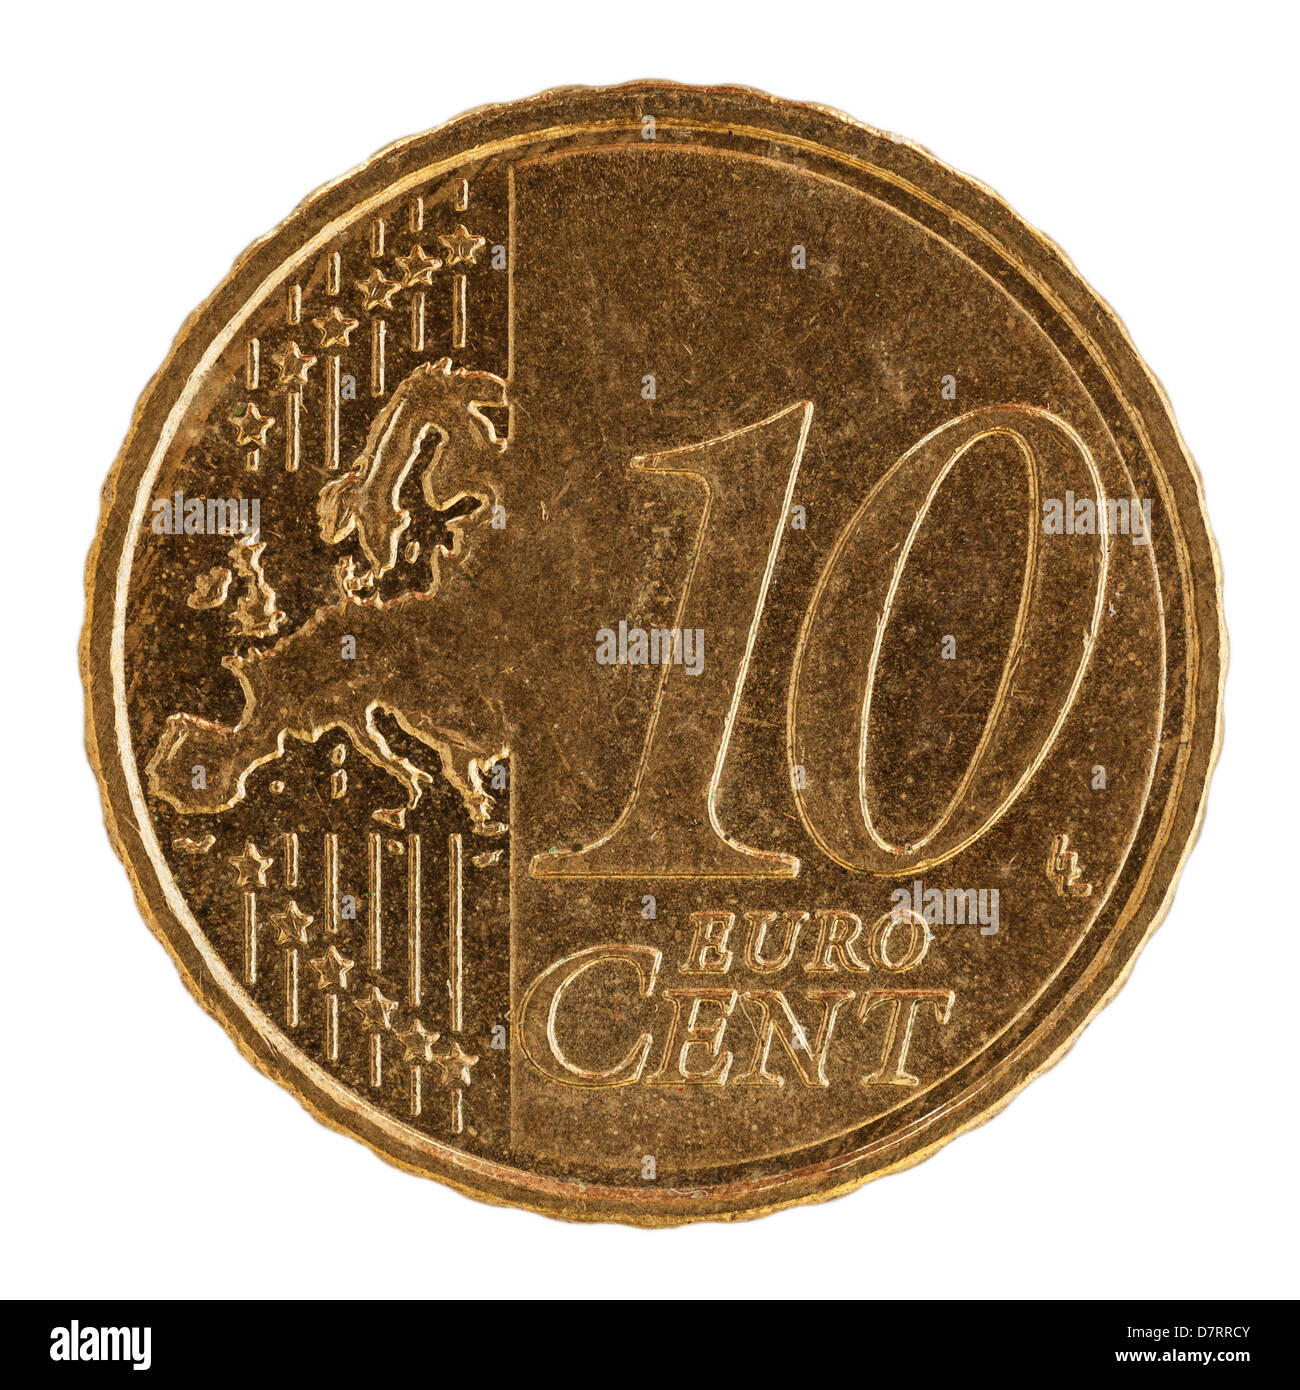 A Spanish euro 10 cent coin on a white background - Stock Image